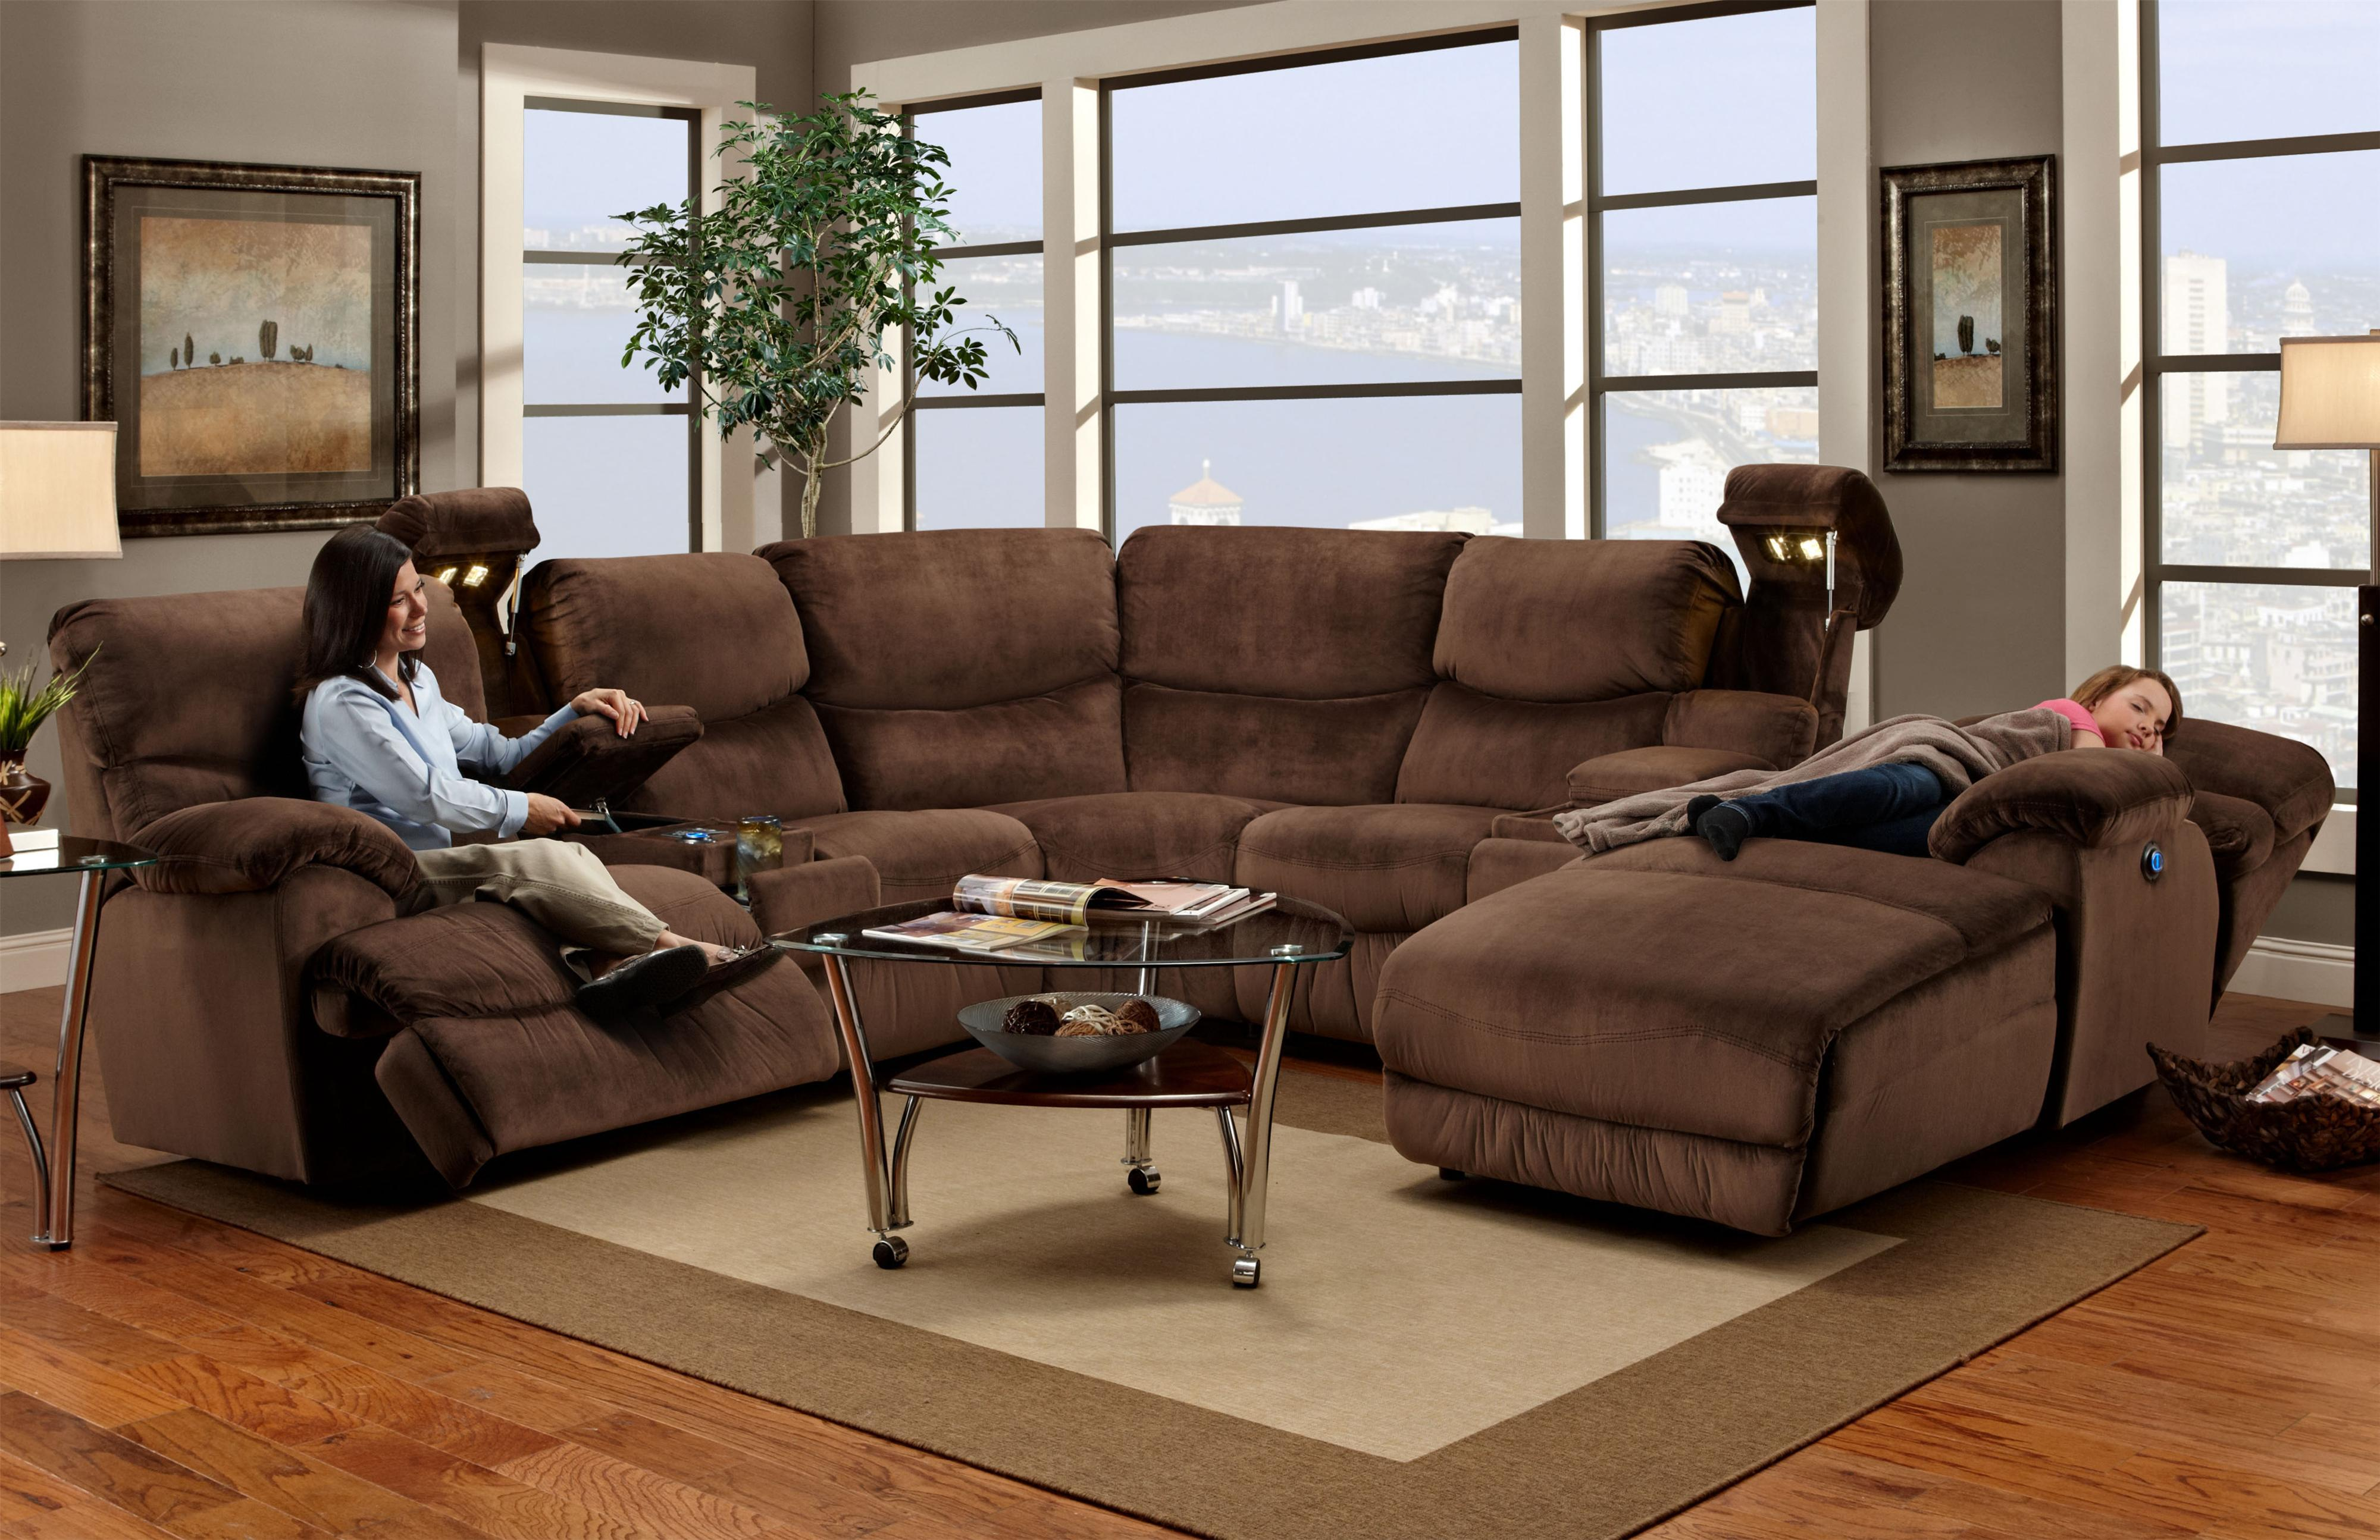 572 reclining sectional sofa with chaise by franklin duresta blenheim 597 casual right